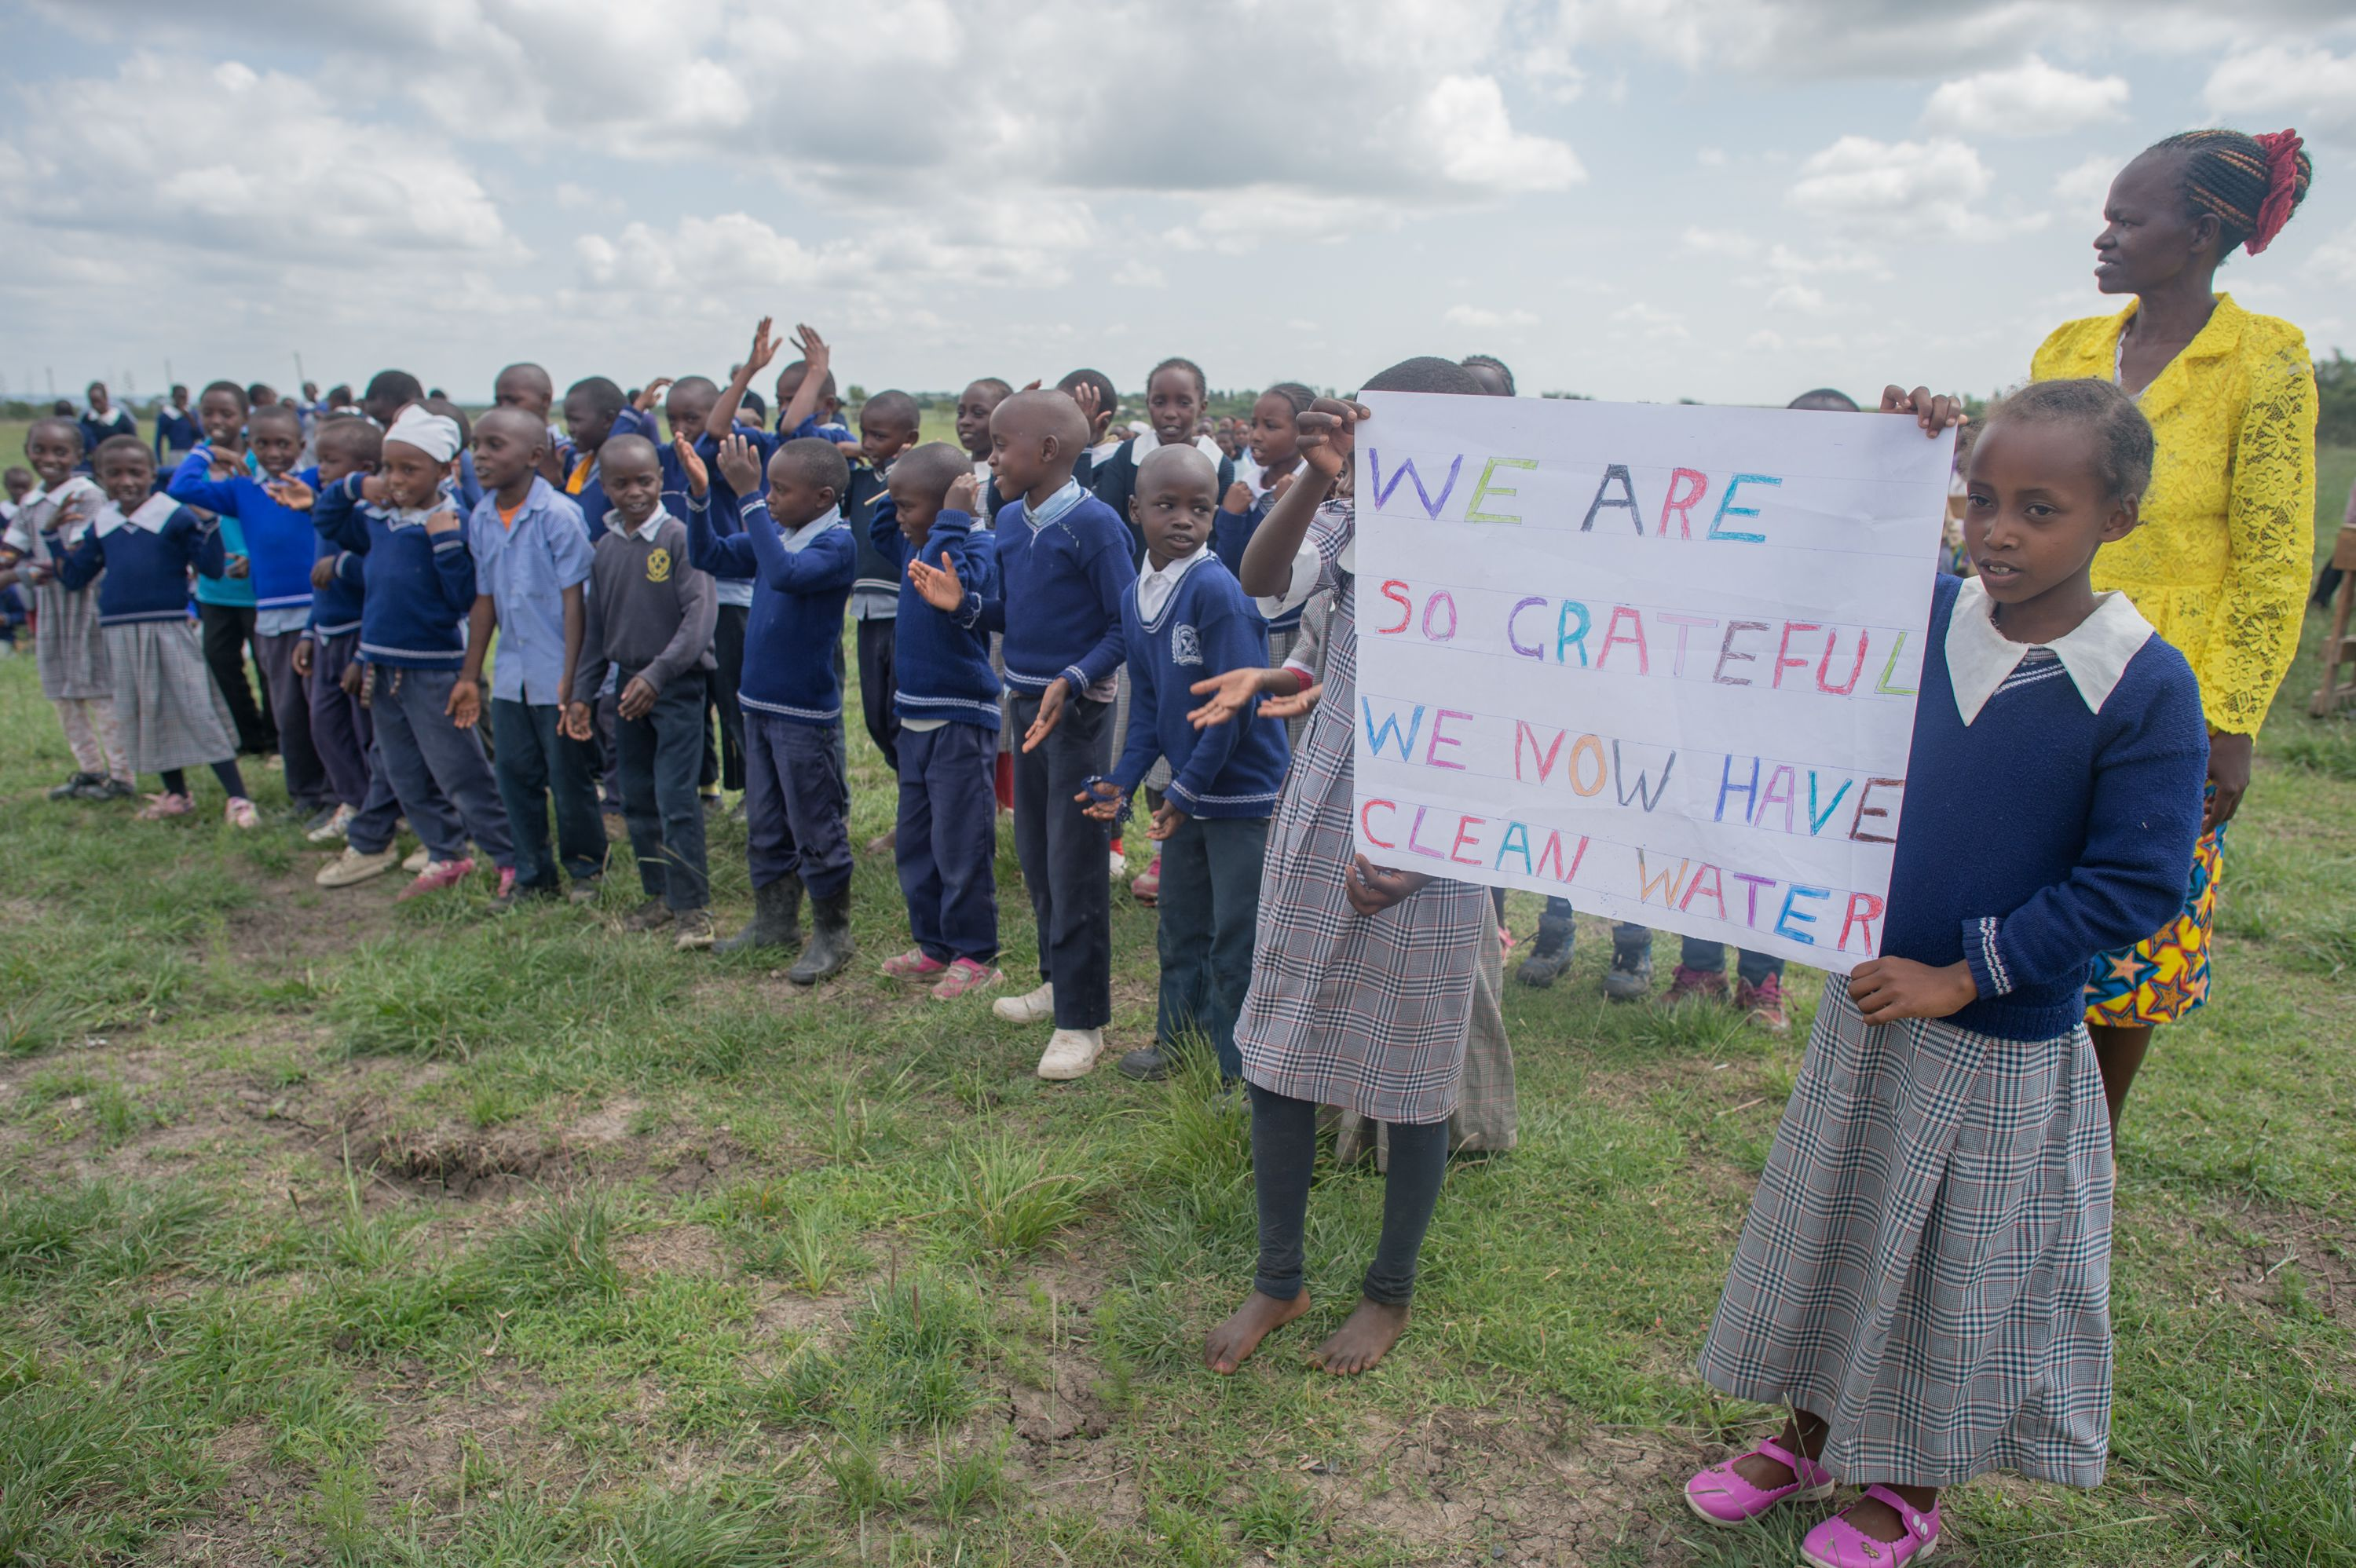 """Young students of Njoguini holding sign that says """"We are so grateful we now have clean water"""""""